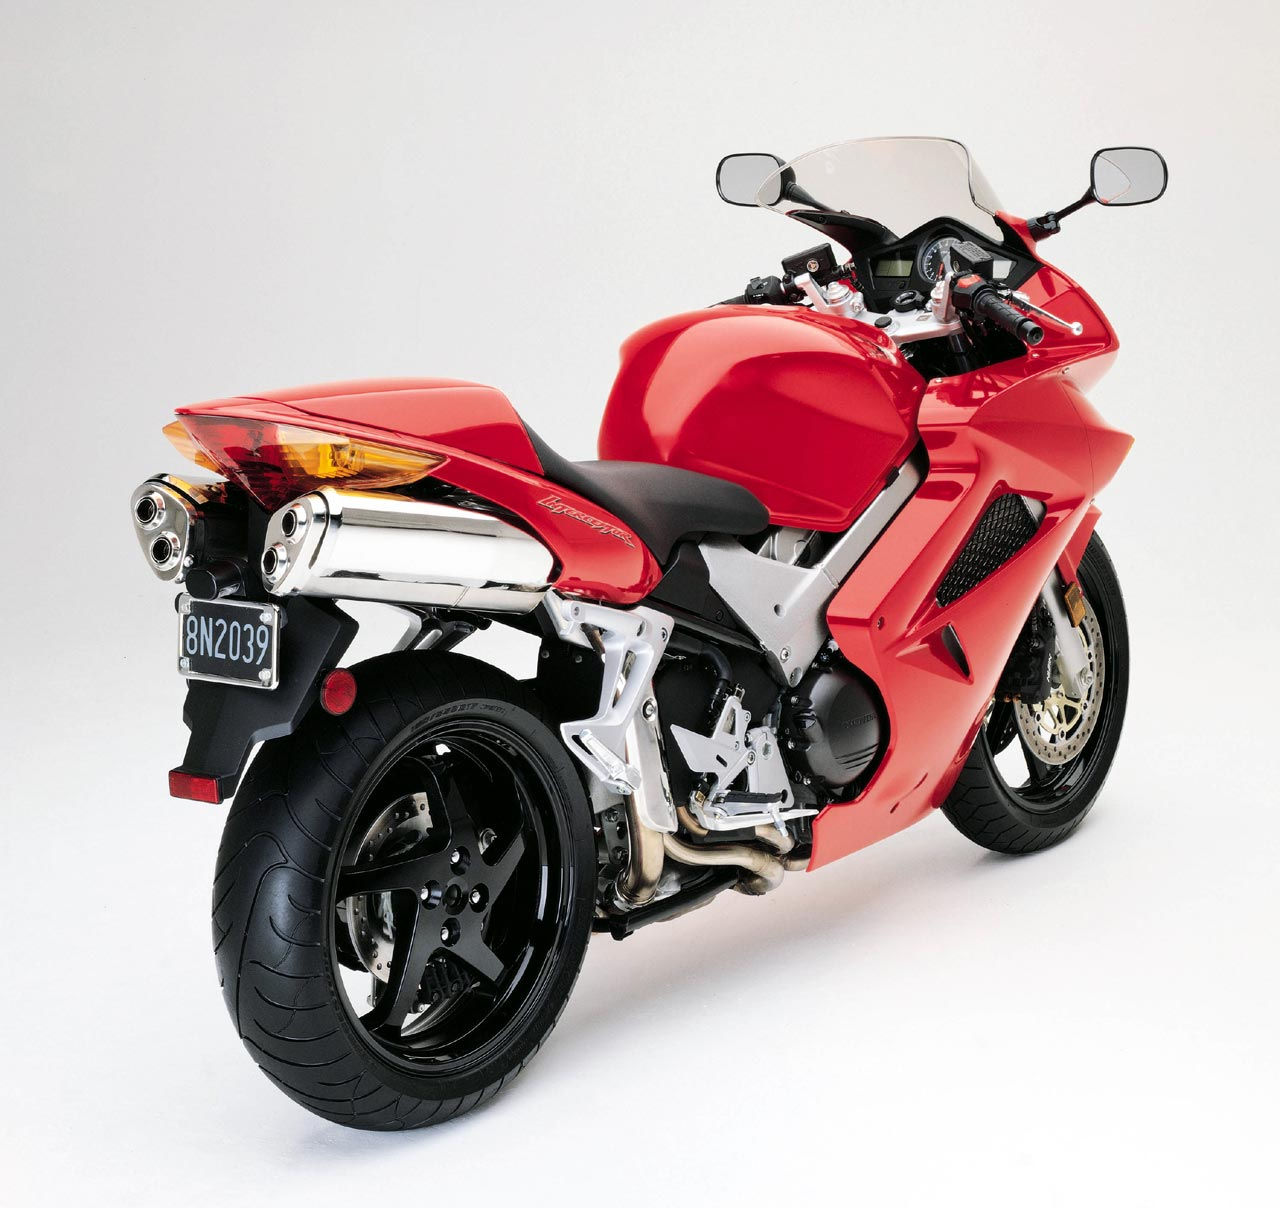 Honda VFR800 Interceptor ABS 2008 #11